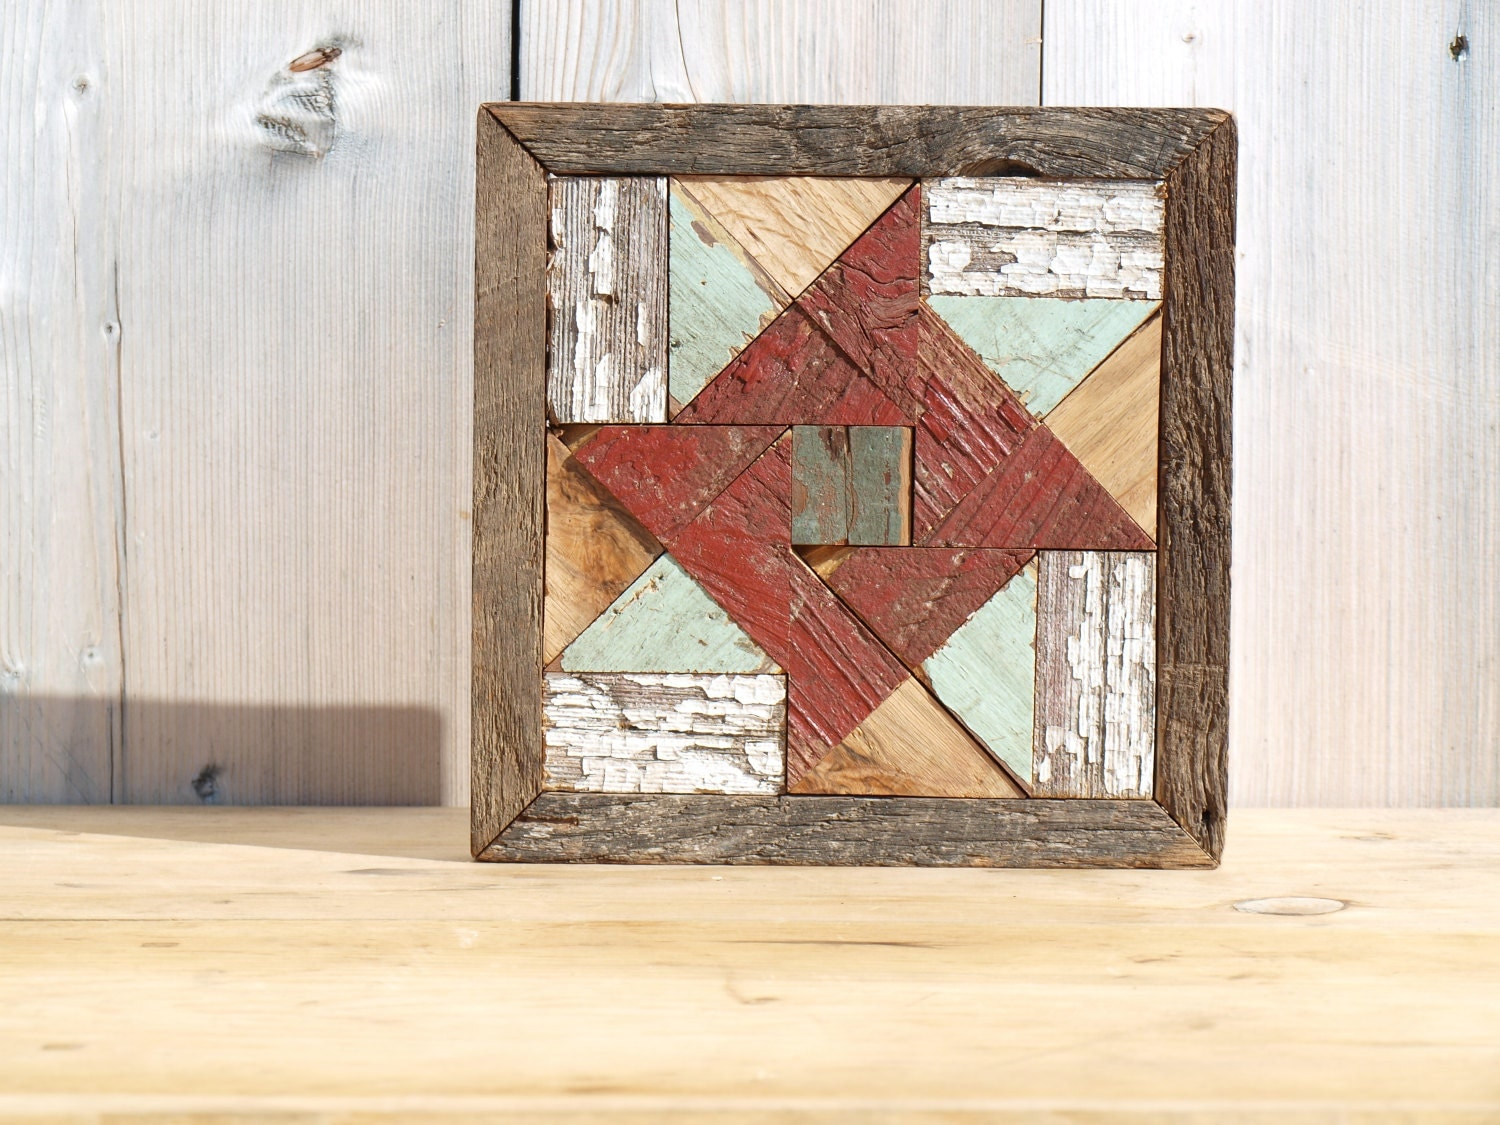 Wooden Barn Quilt Wall Quilt Hanging Salvaged Wood Art